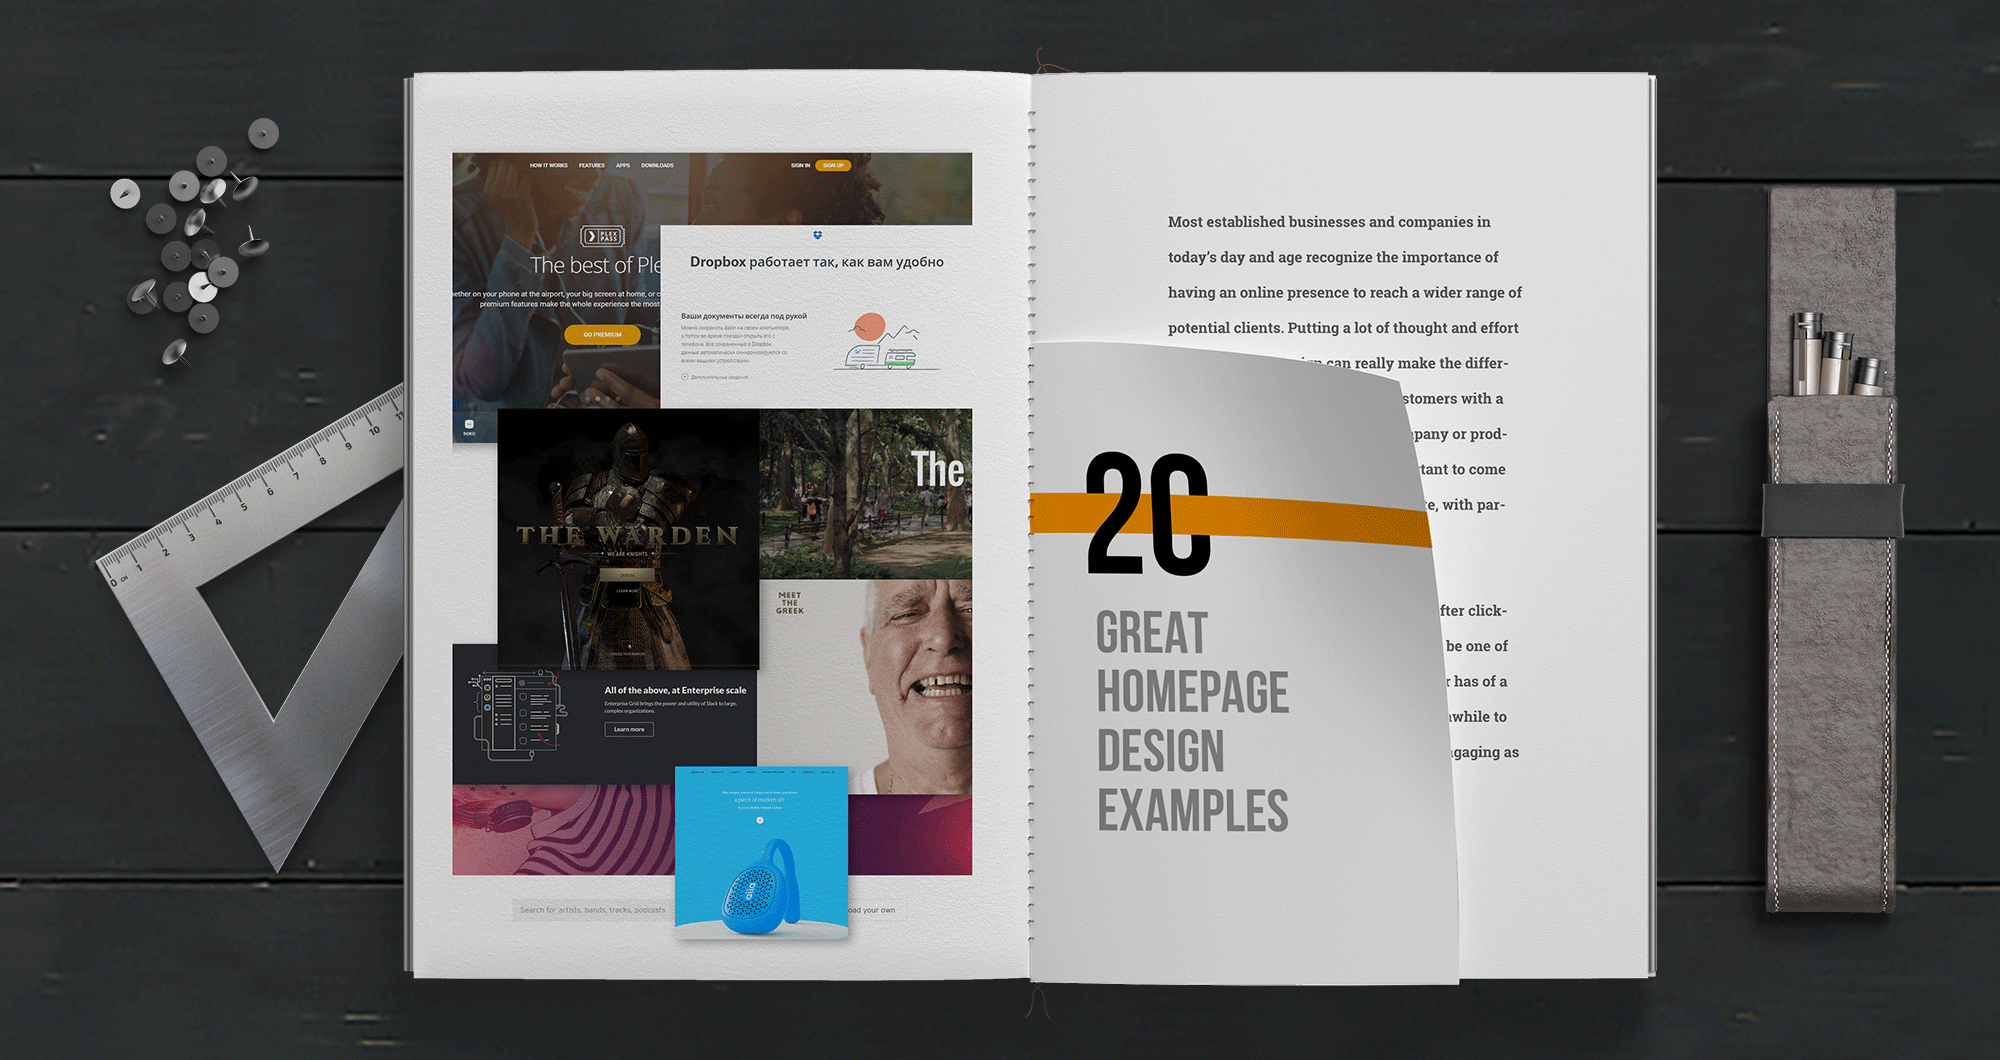 20 Greatest Home Page Design Examples By Steelkiwi Inc Muzli Design Inspiration